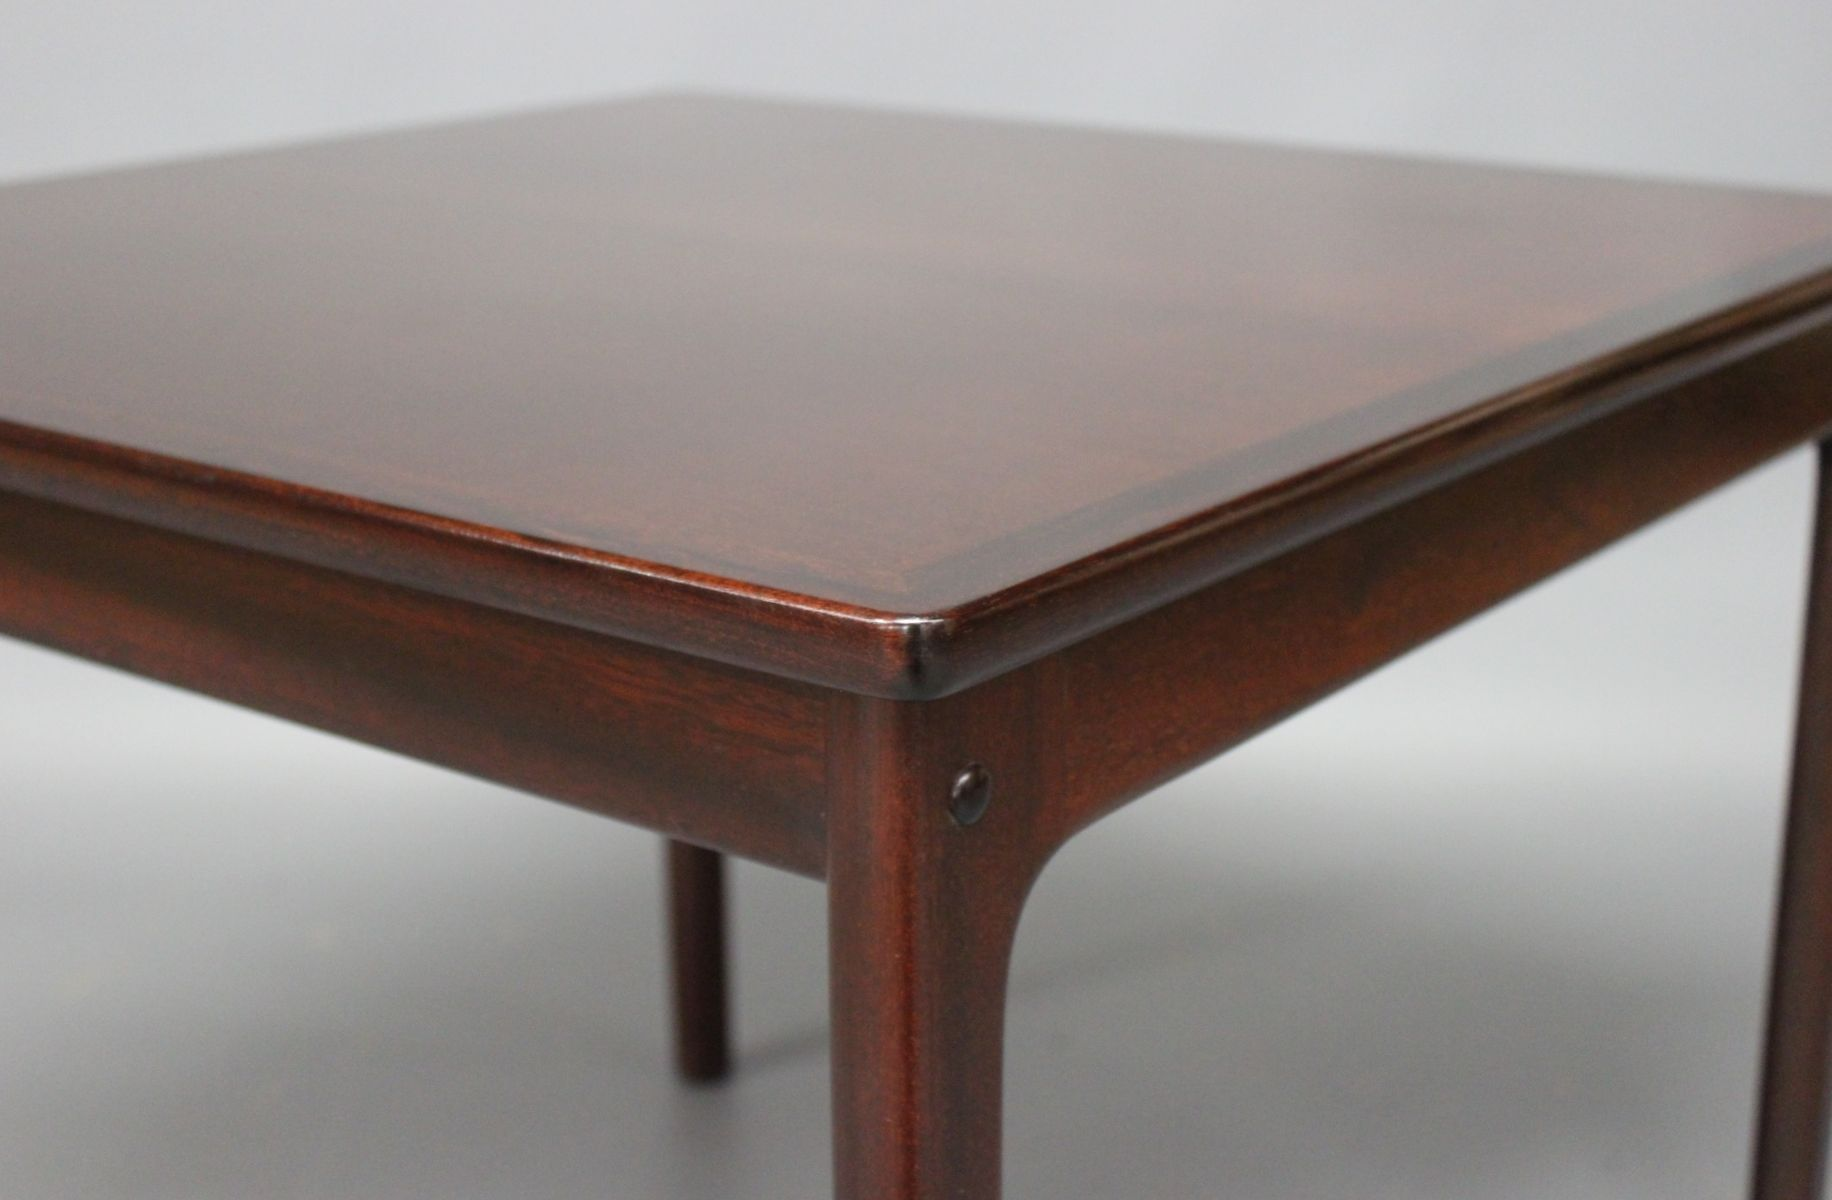 Mahogany Coffee Table by Ole Wanscher for P Jeppesen 1960s for